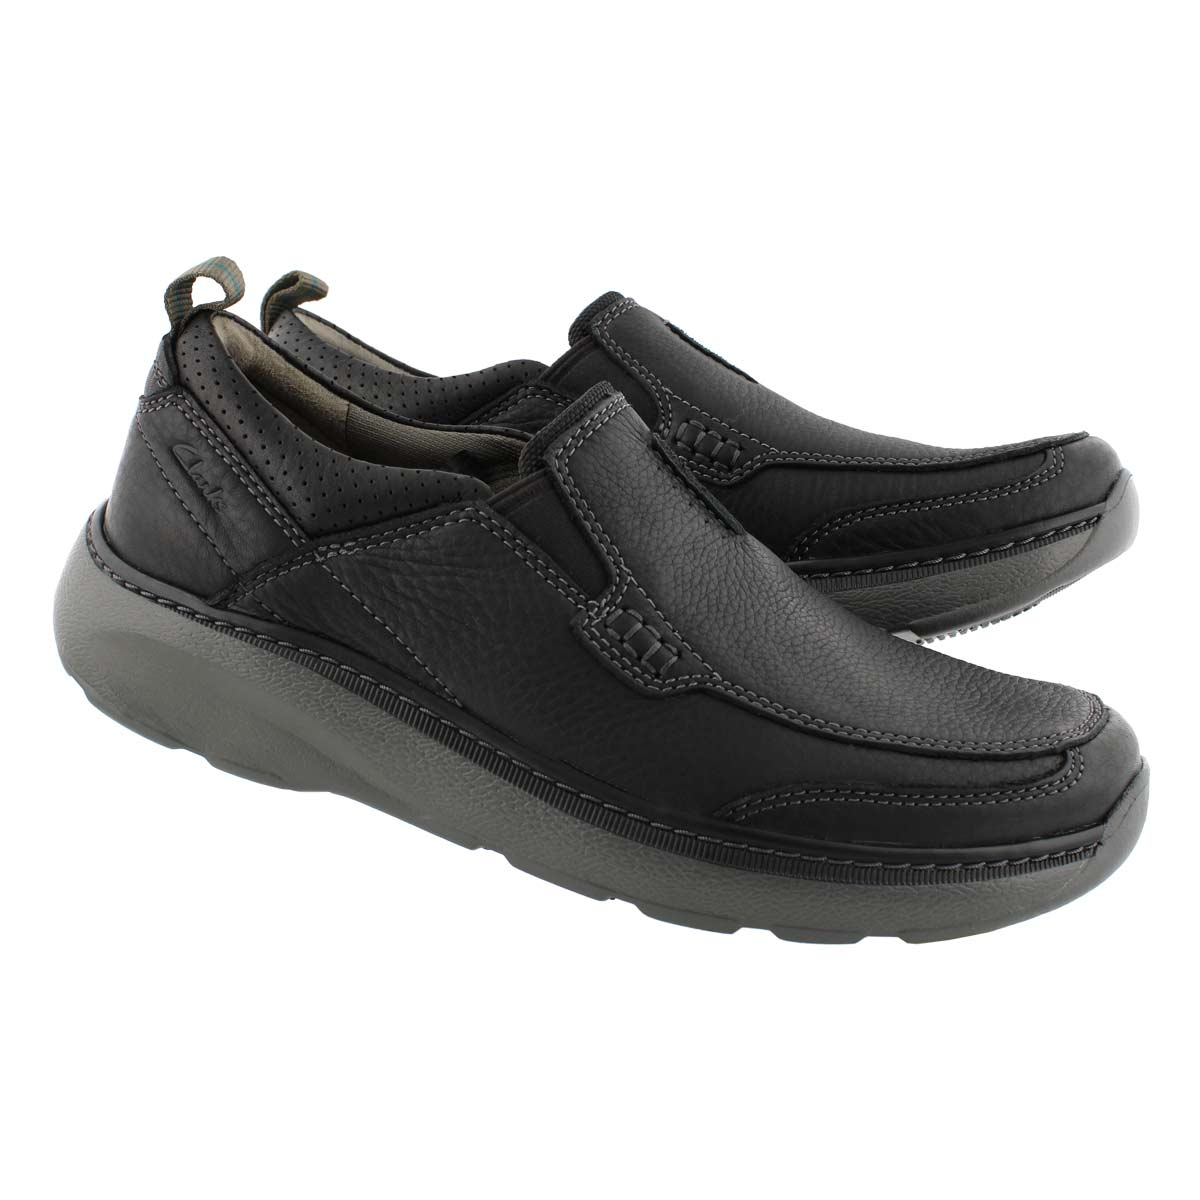 Mns Charton Step black casual slip on